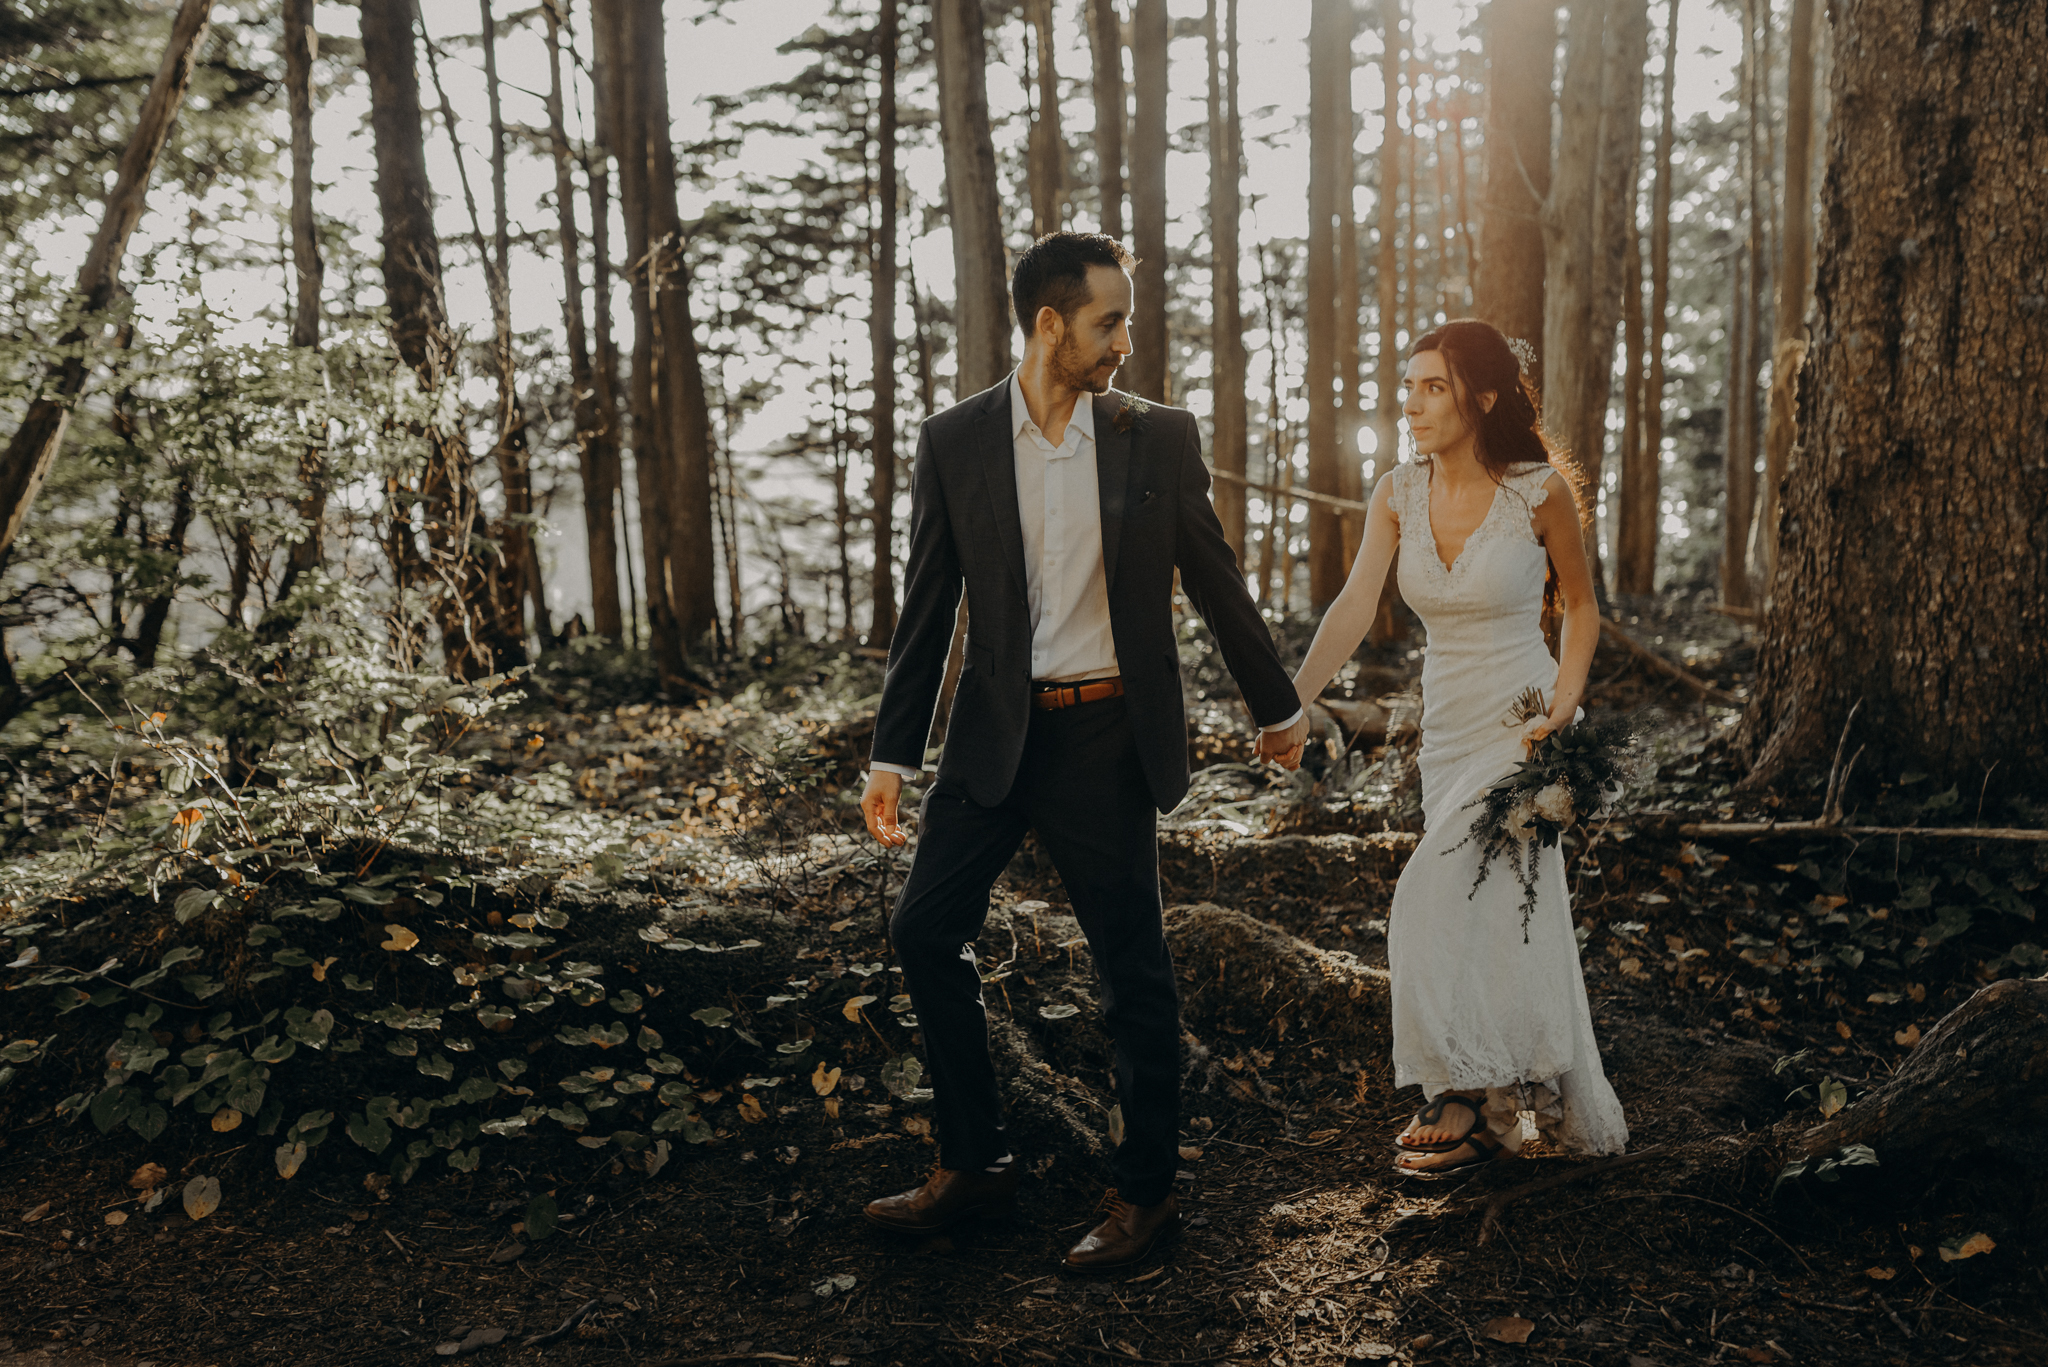 Isaiah + Taylor Photography - Cape Flattery Elopement, Olympia National Forest Wedding Photographer-106.jpg